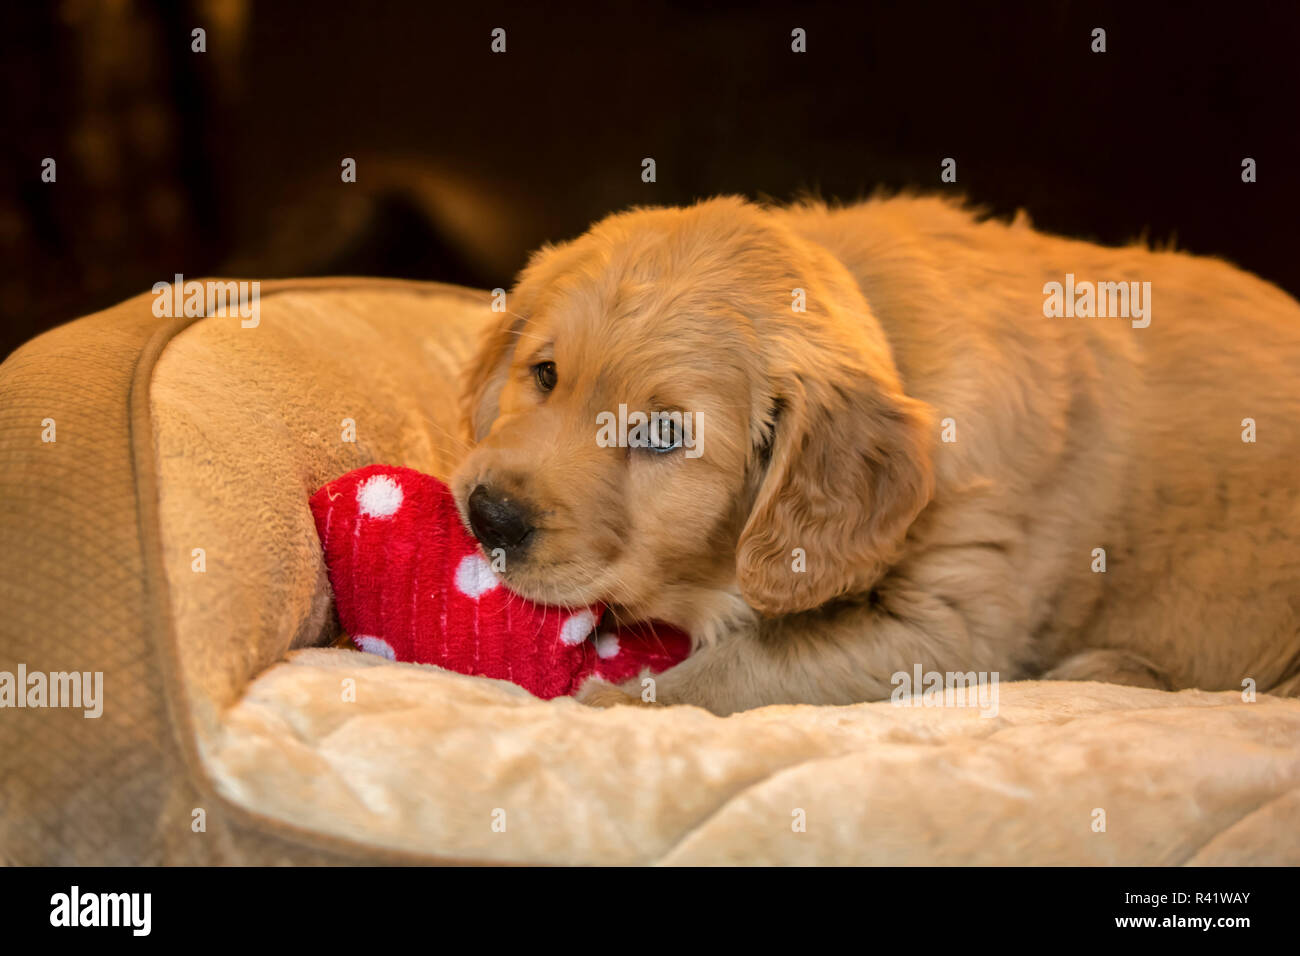 Eight Week Old Golden Retriever Puppy Chewing On A Stuffed Toy In